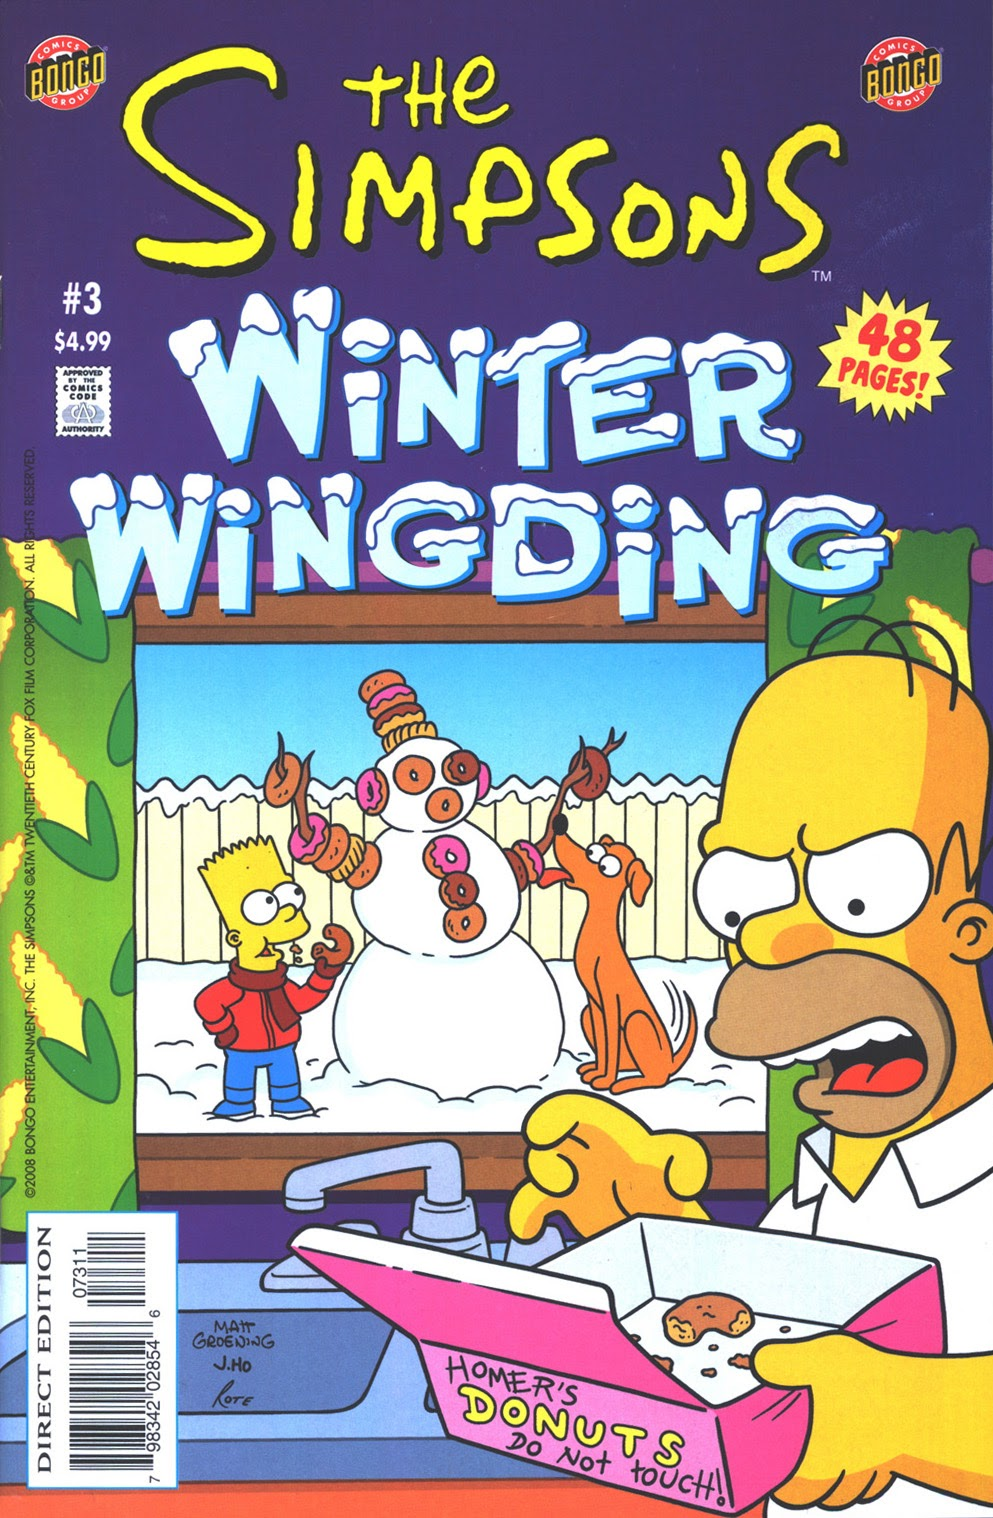 Read online The Simpsons Winter Wingding comic -  Issue #3 - 1